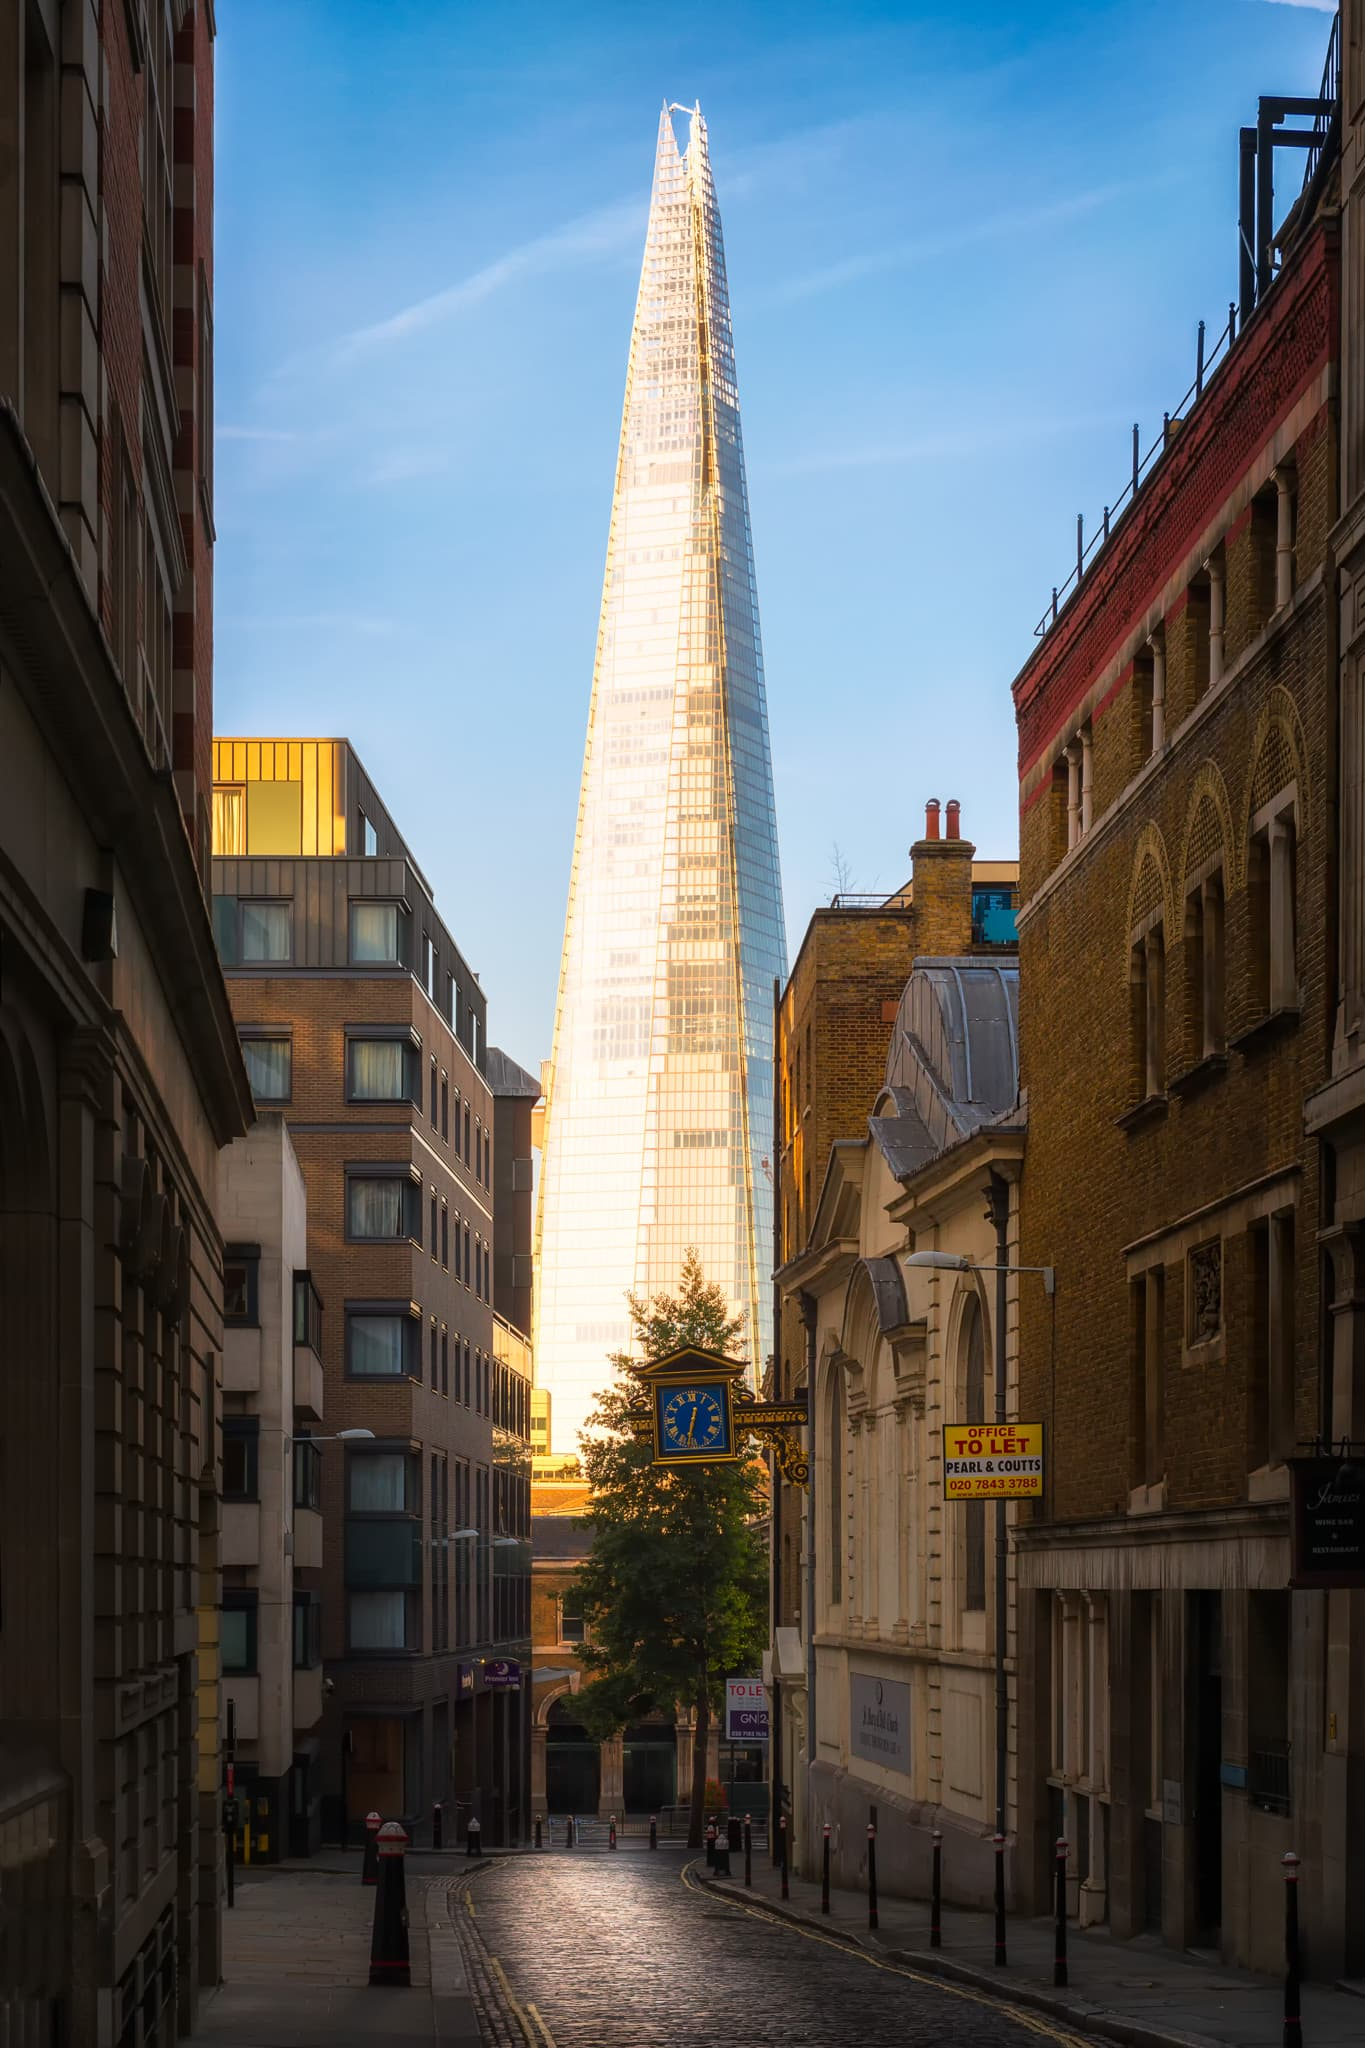 The Shard an einem sonnigen Tag in London, England.